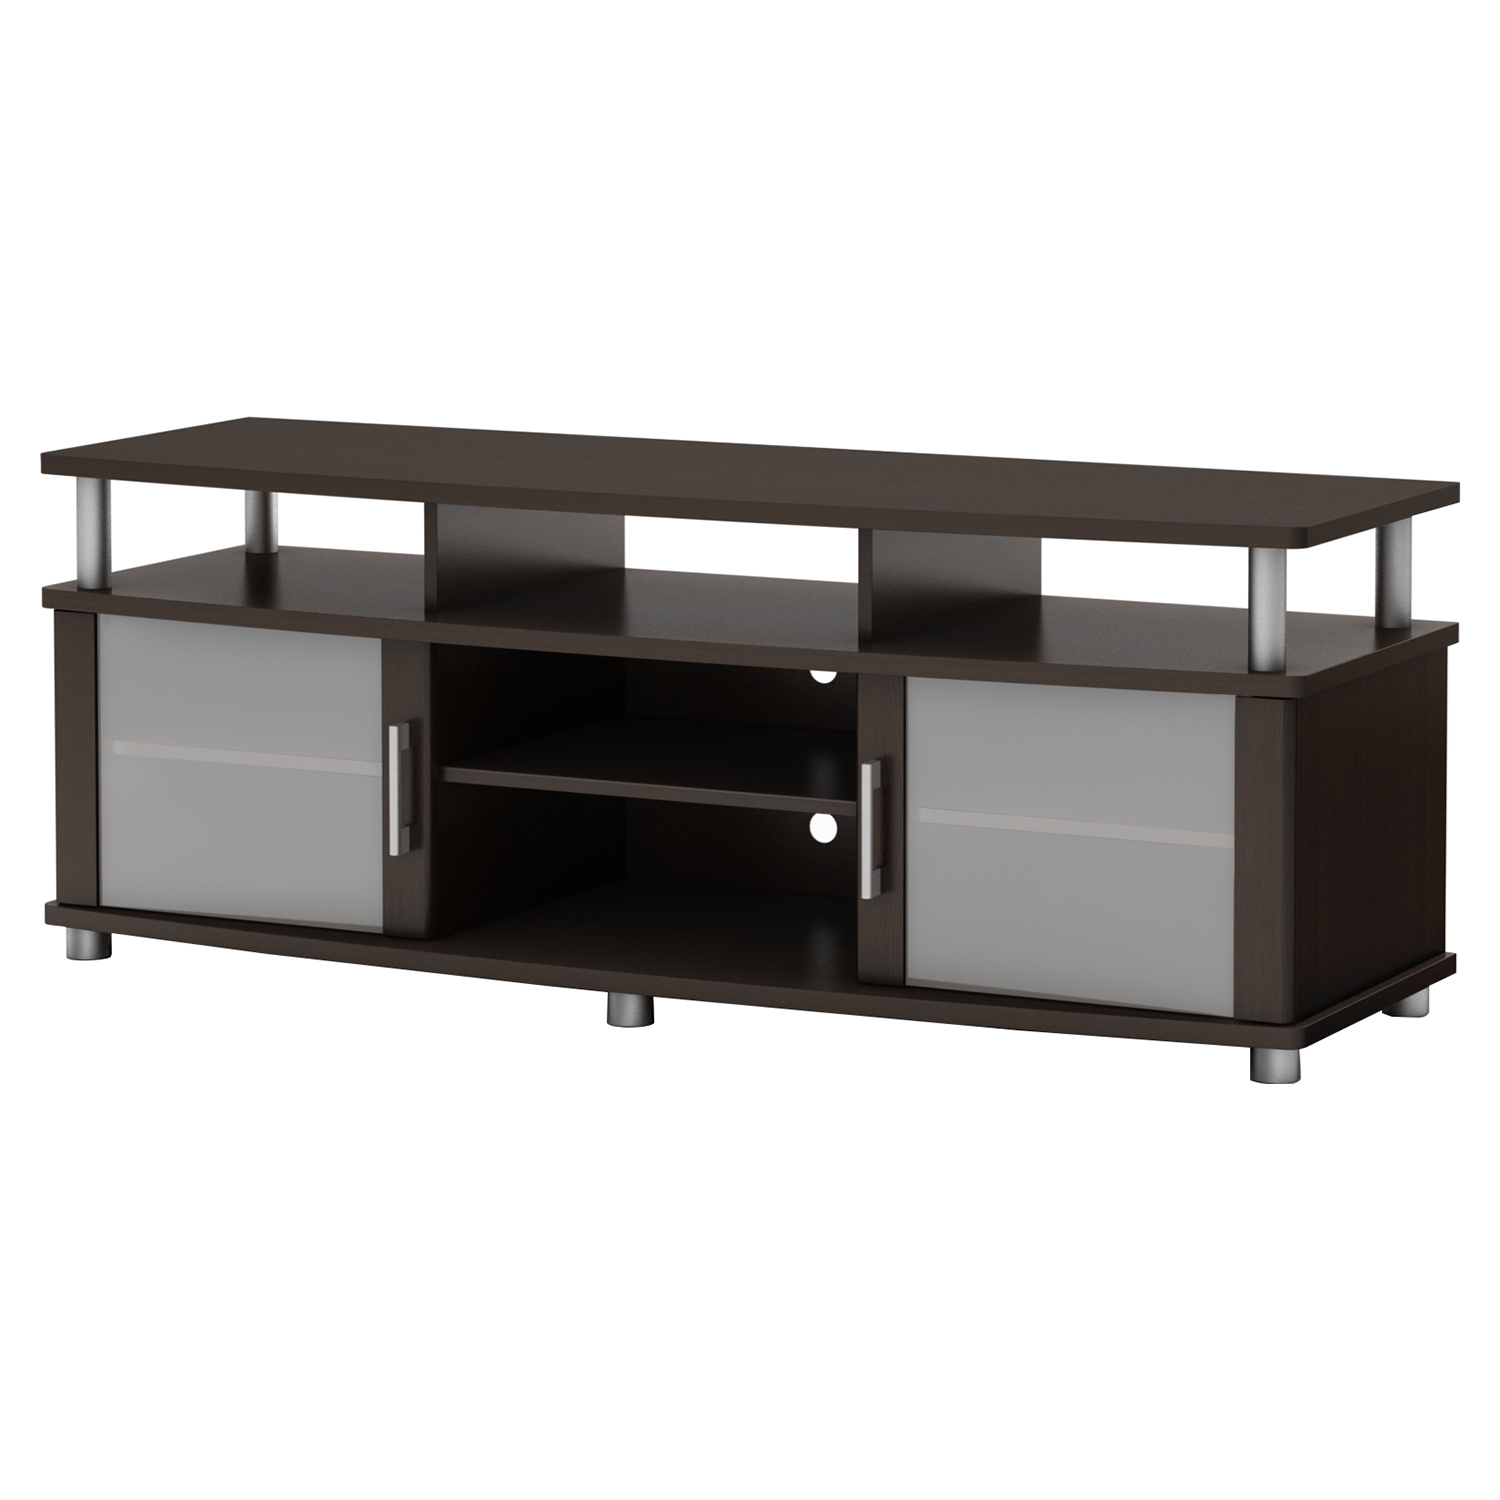 City Life TV Stand - Chocolate